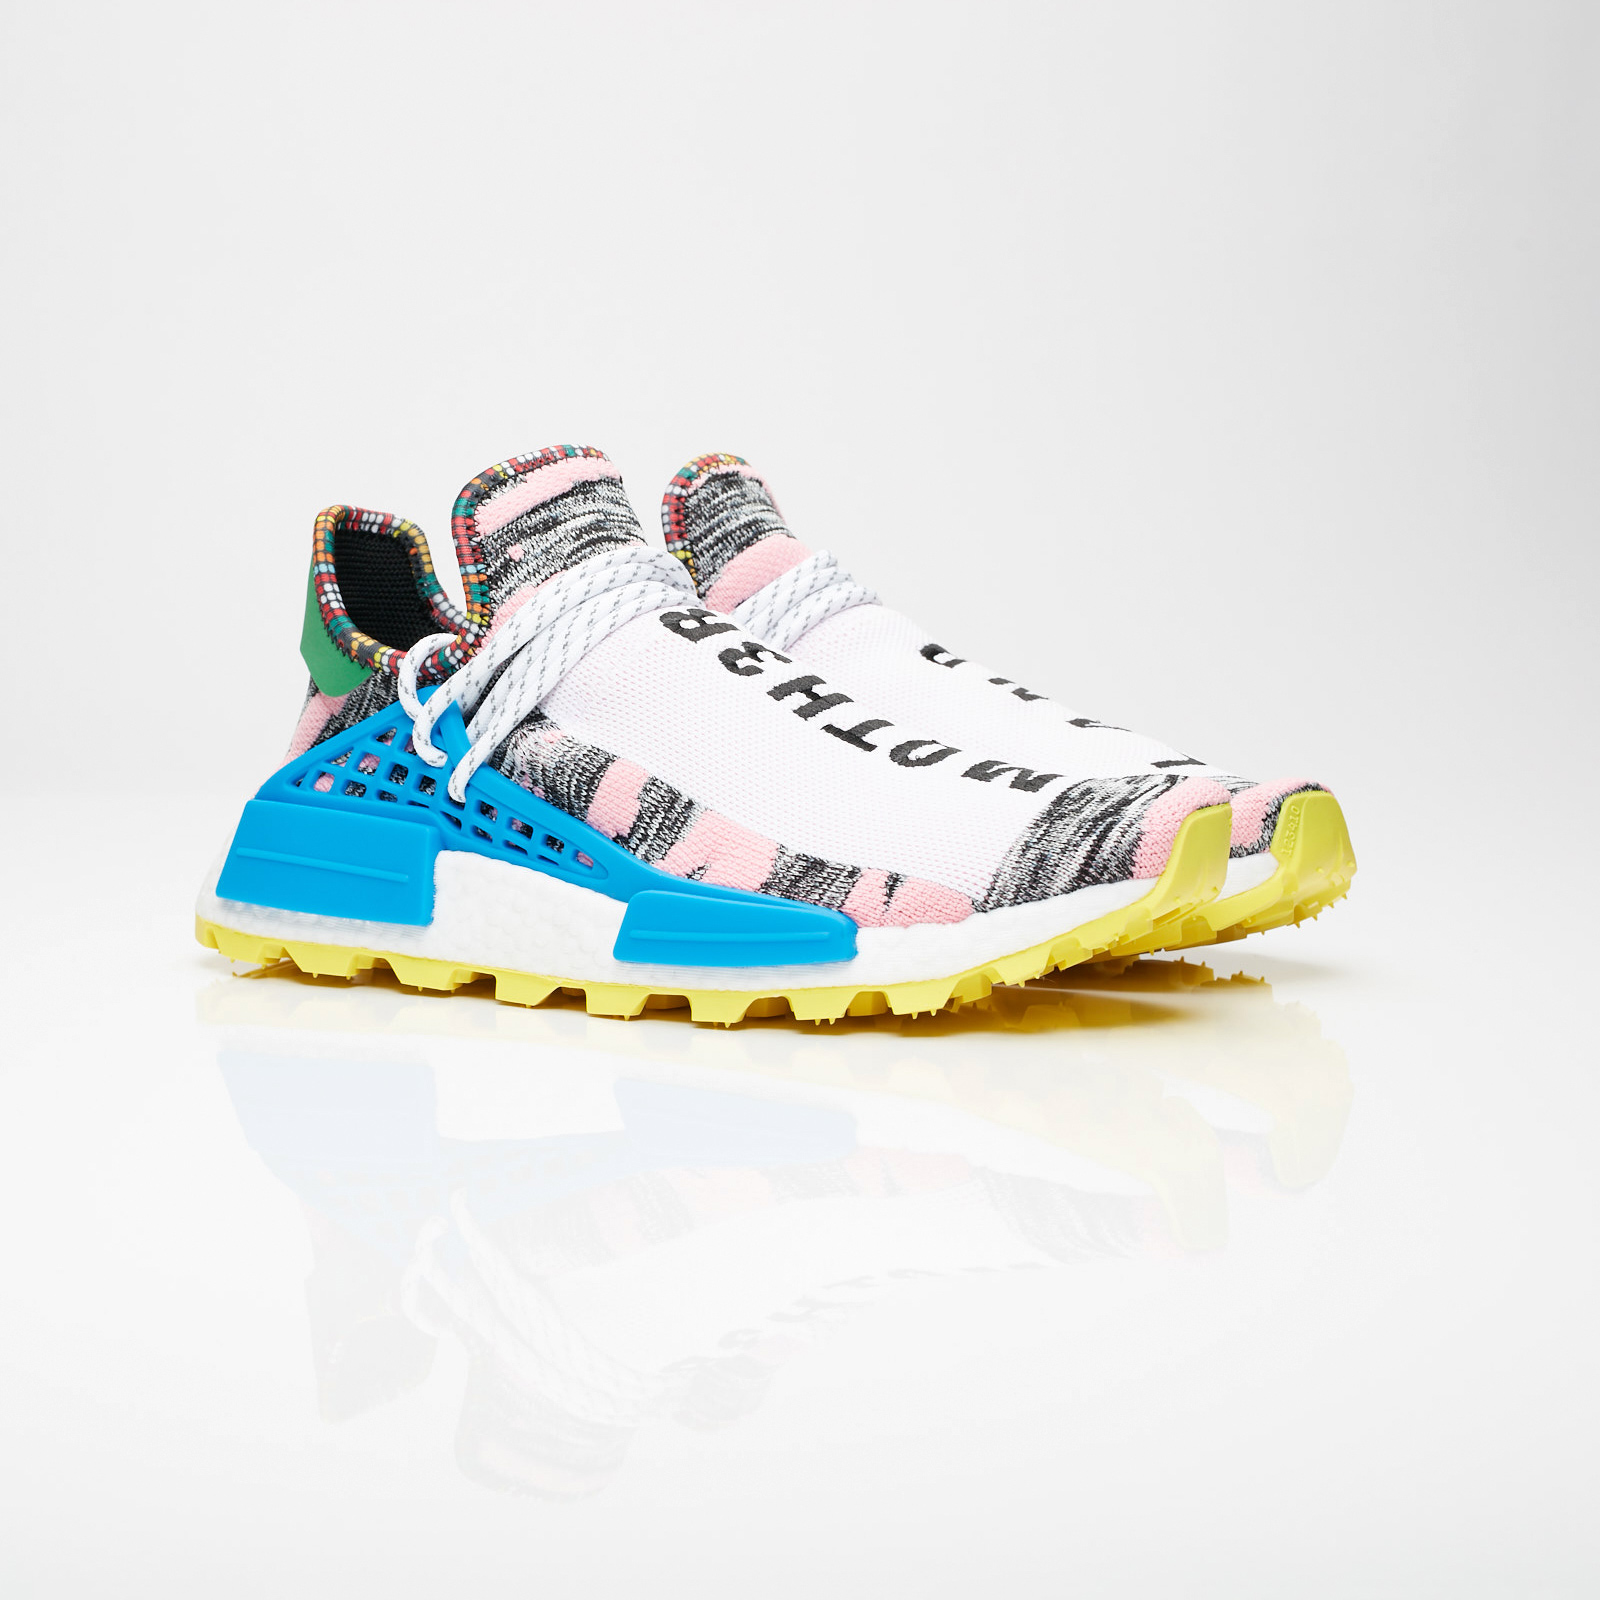 4f8796821827e adidas Solar HU NMD x Pharrell Williams - Bb9531 - Sneakersnstuff ...